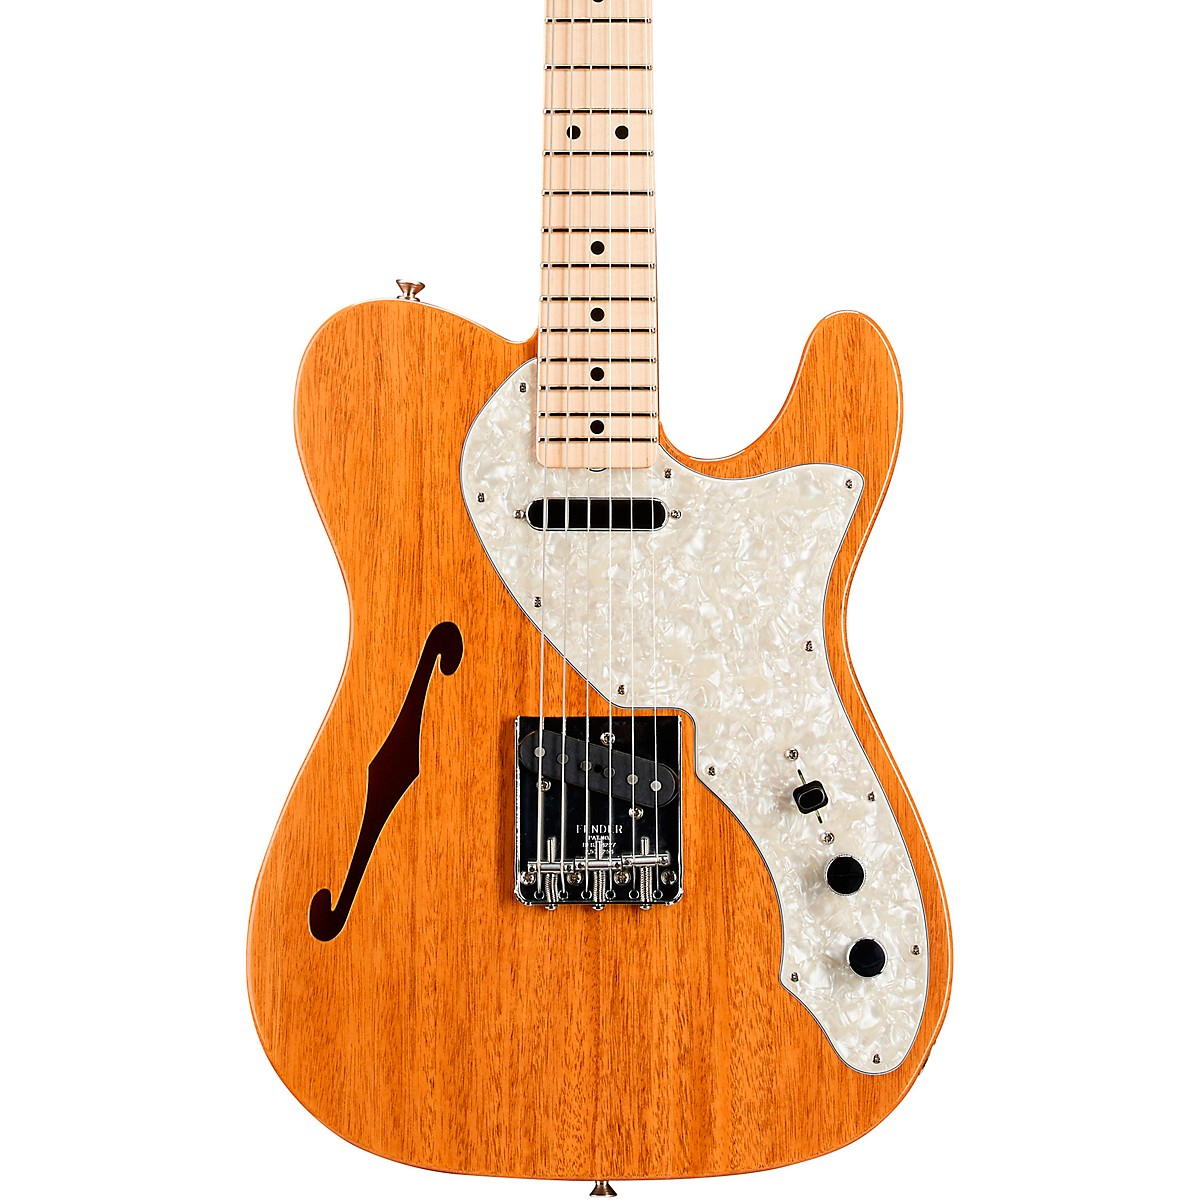 Fender Custom Shop Vintage Custom 1968 Telecaster Thinline Electric Guitar